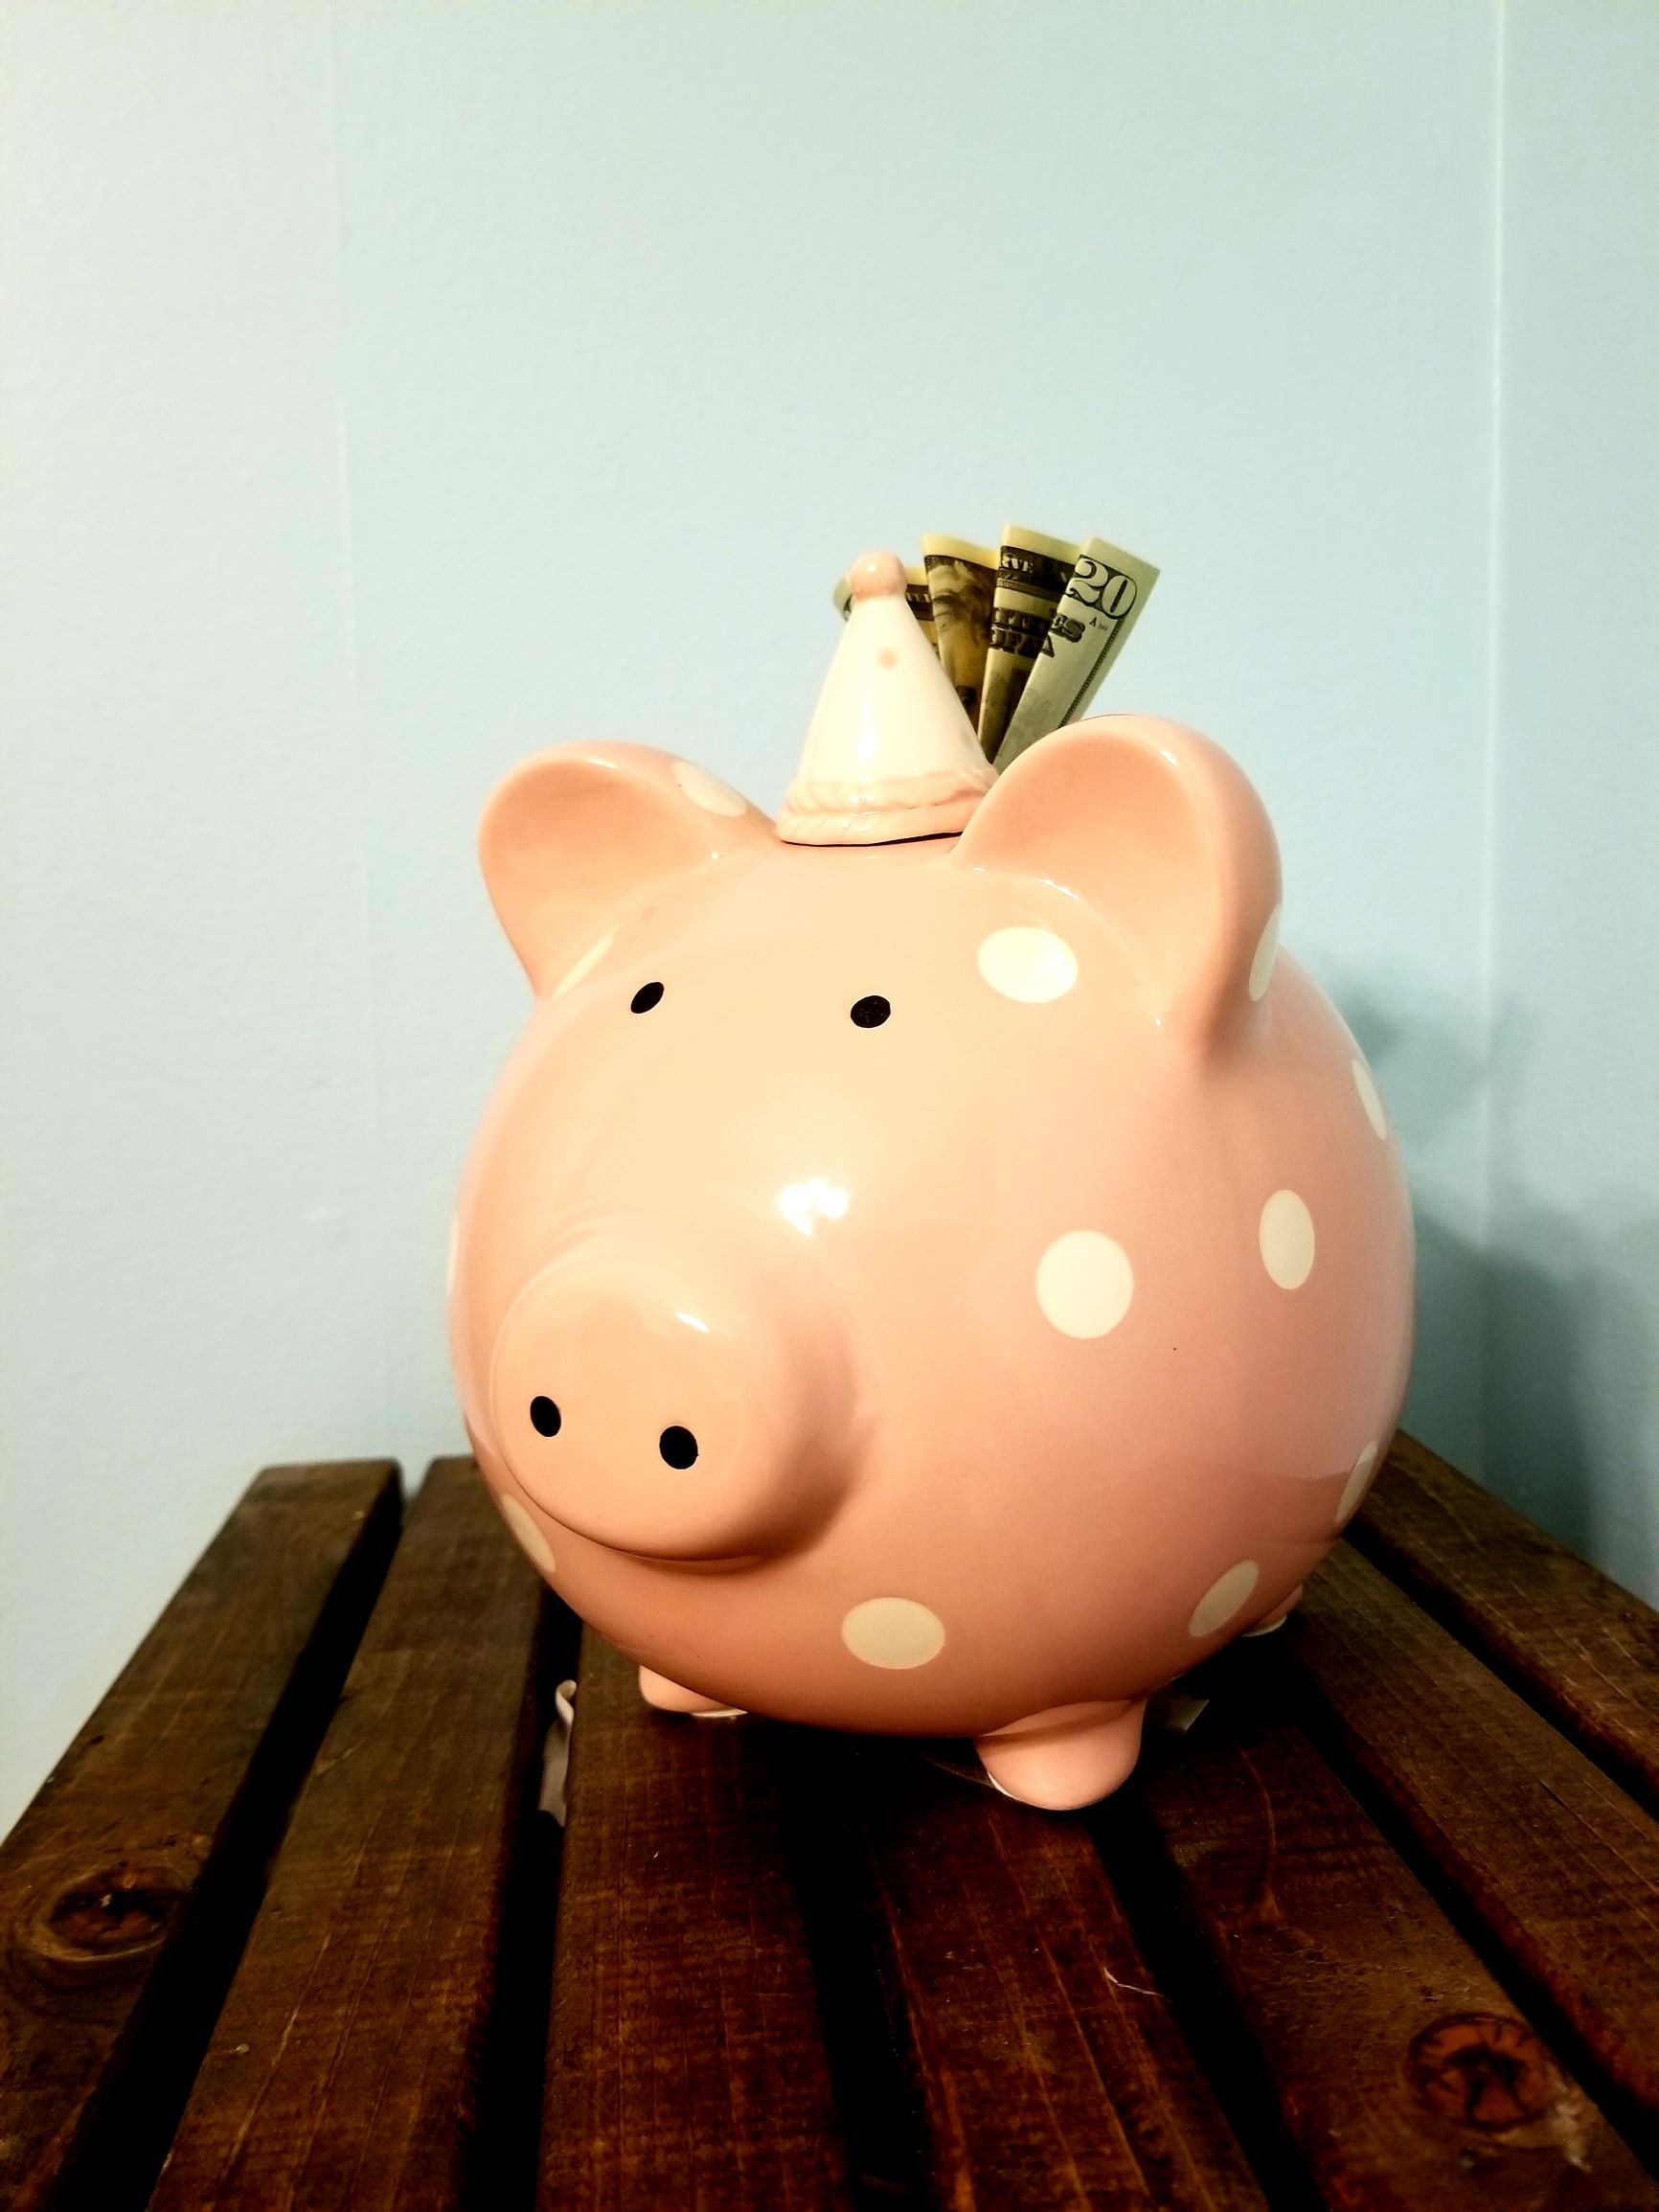 How to Budget: Survive and Save on One Income